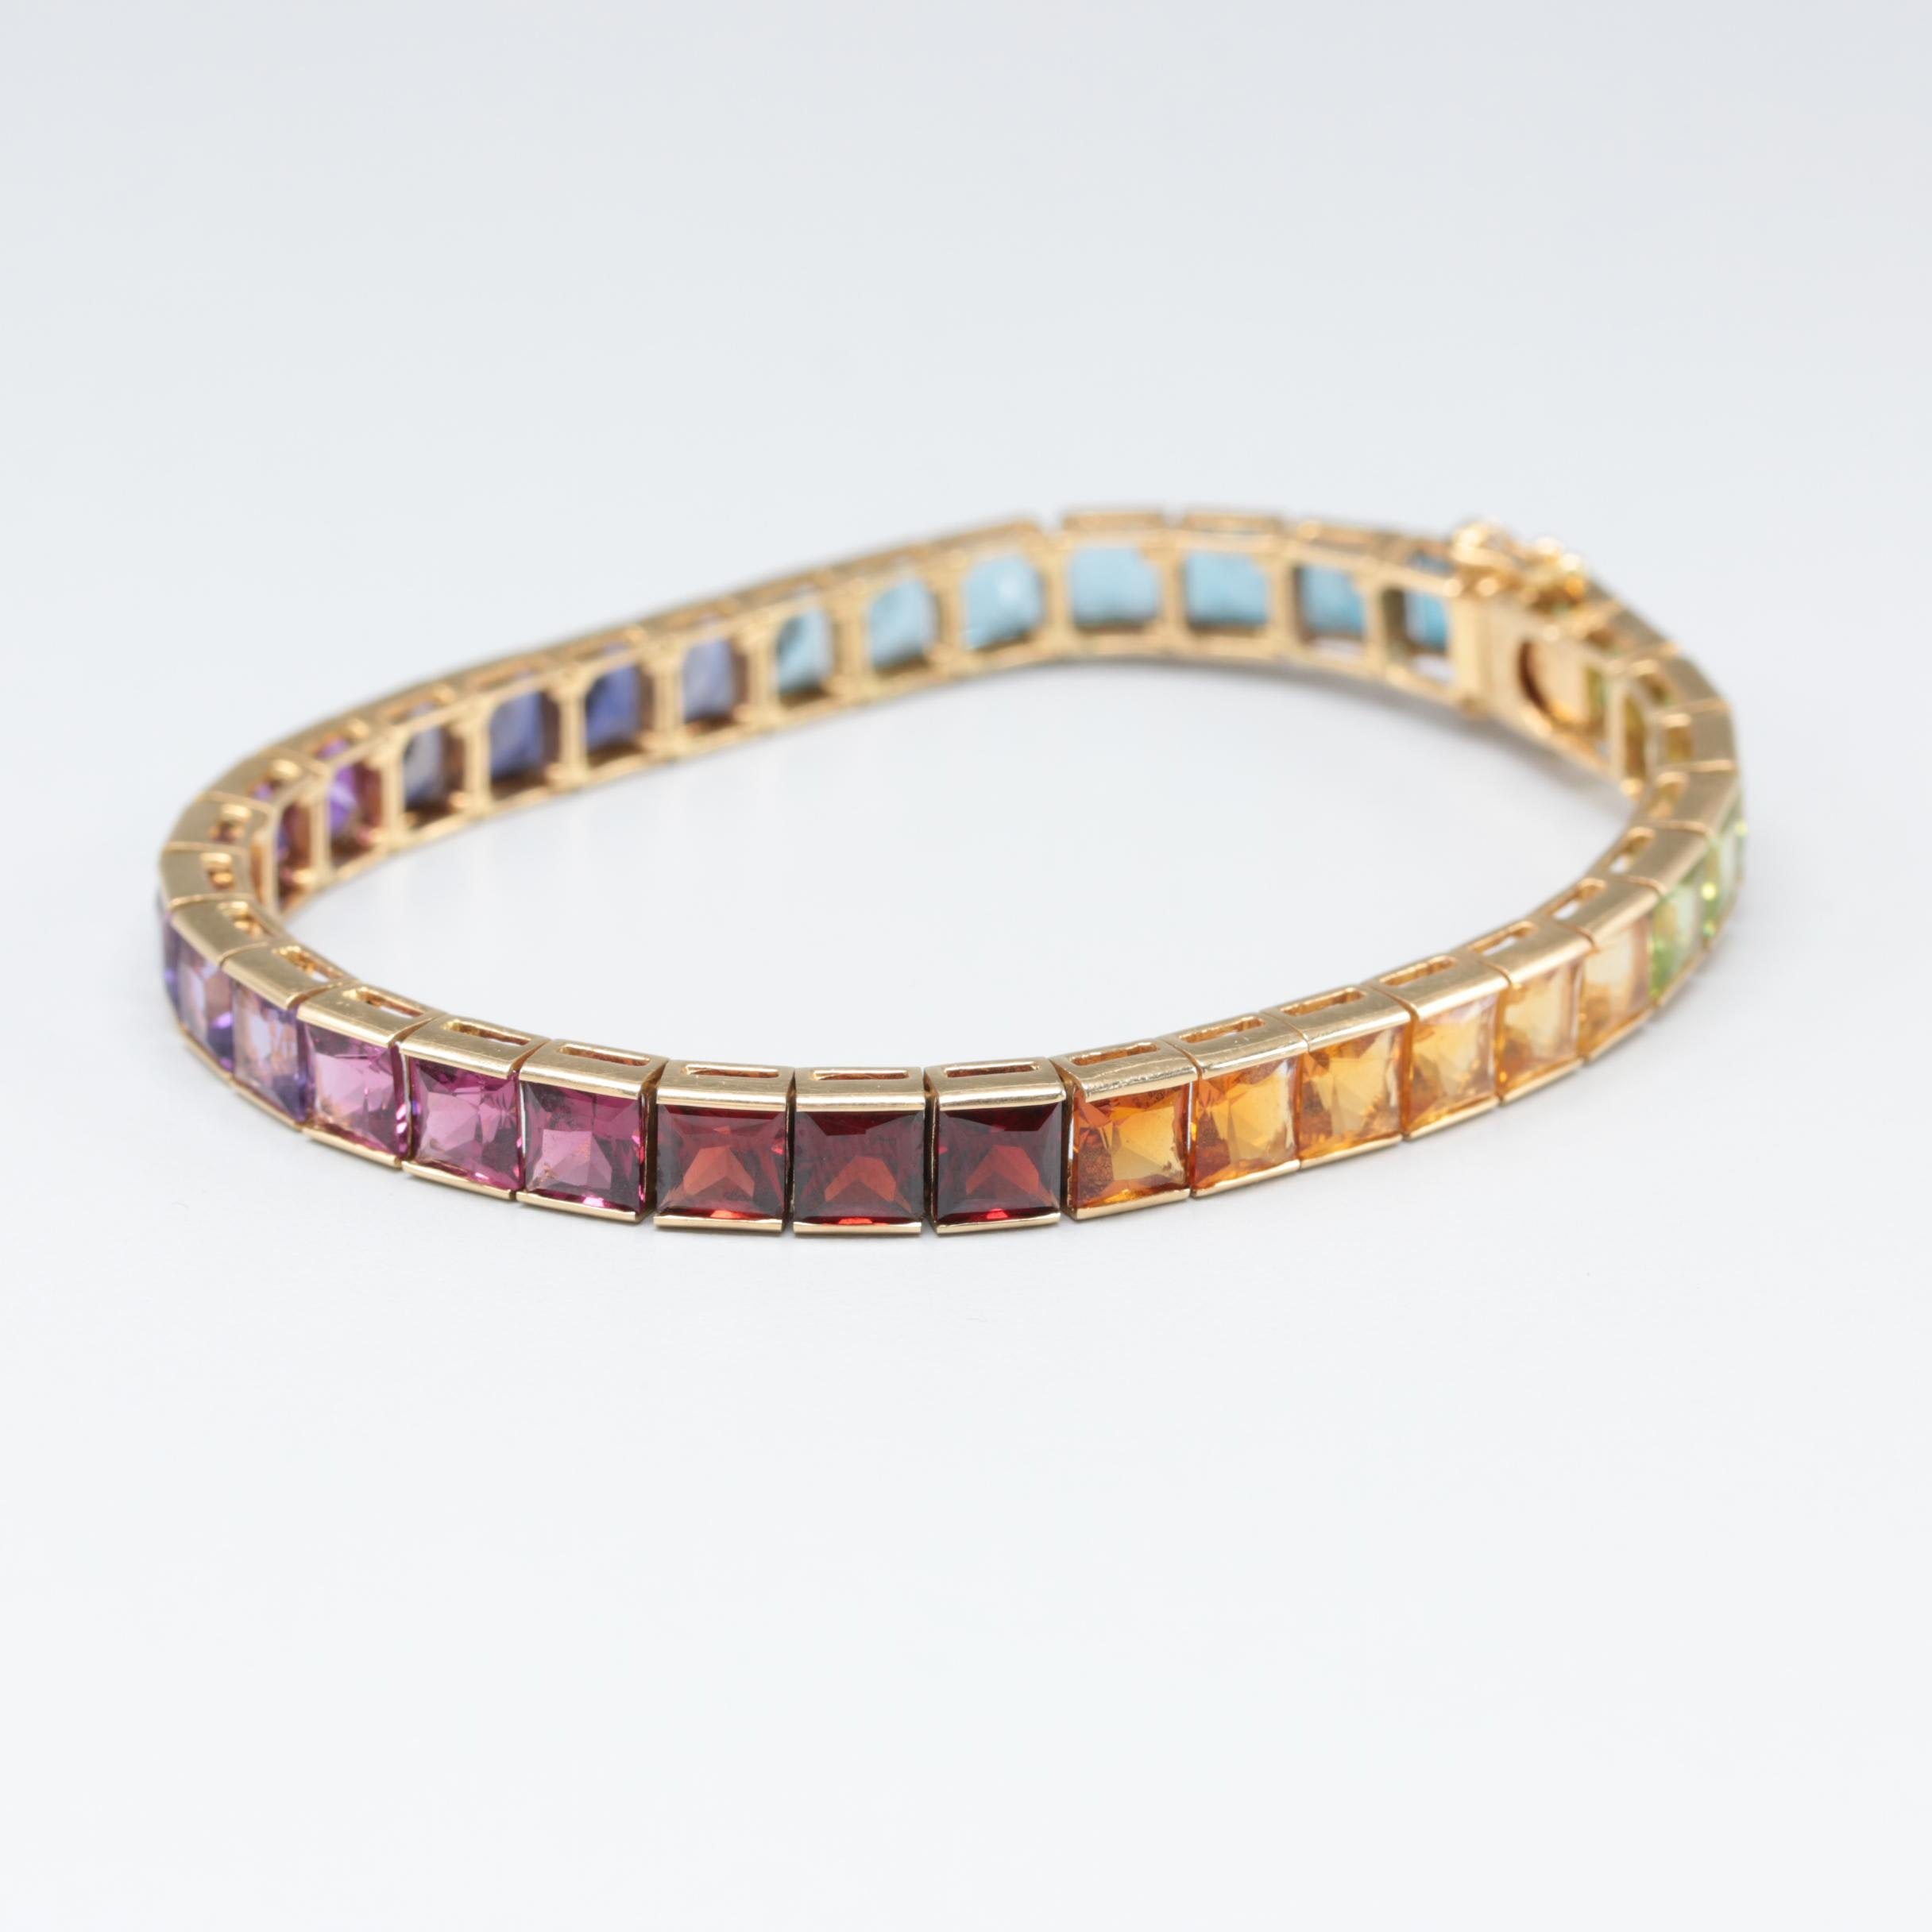 18K Yellow Gold Line Bracelet with Amethyst, Citrine, and Peridot